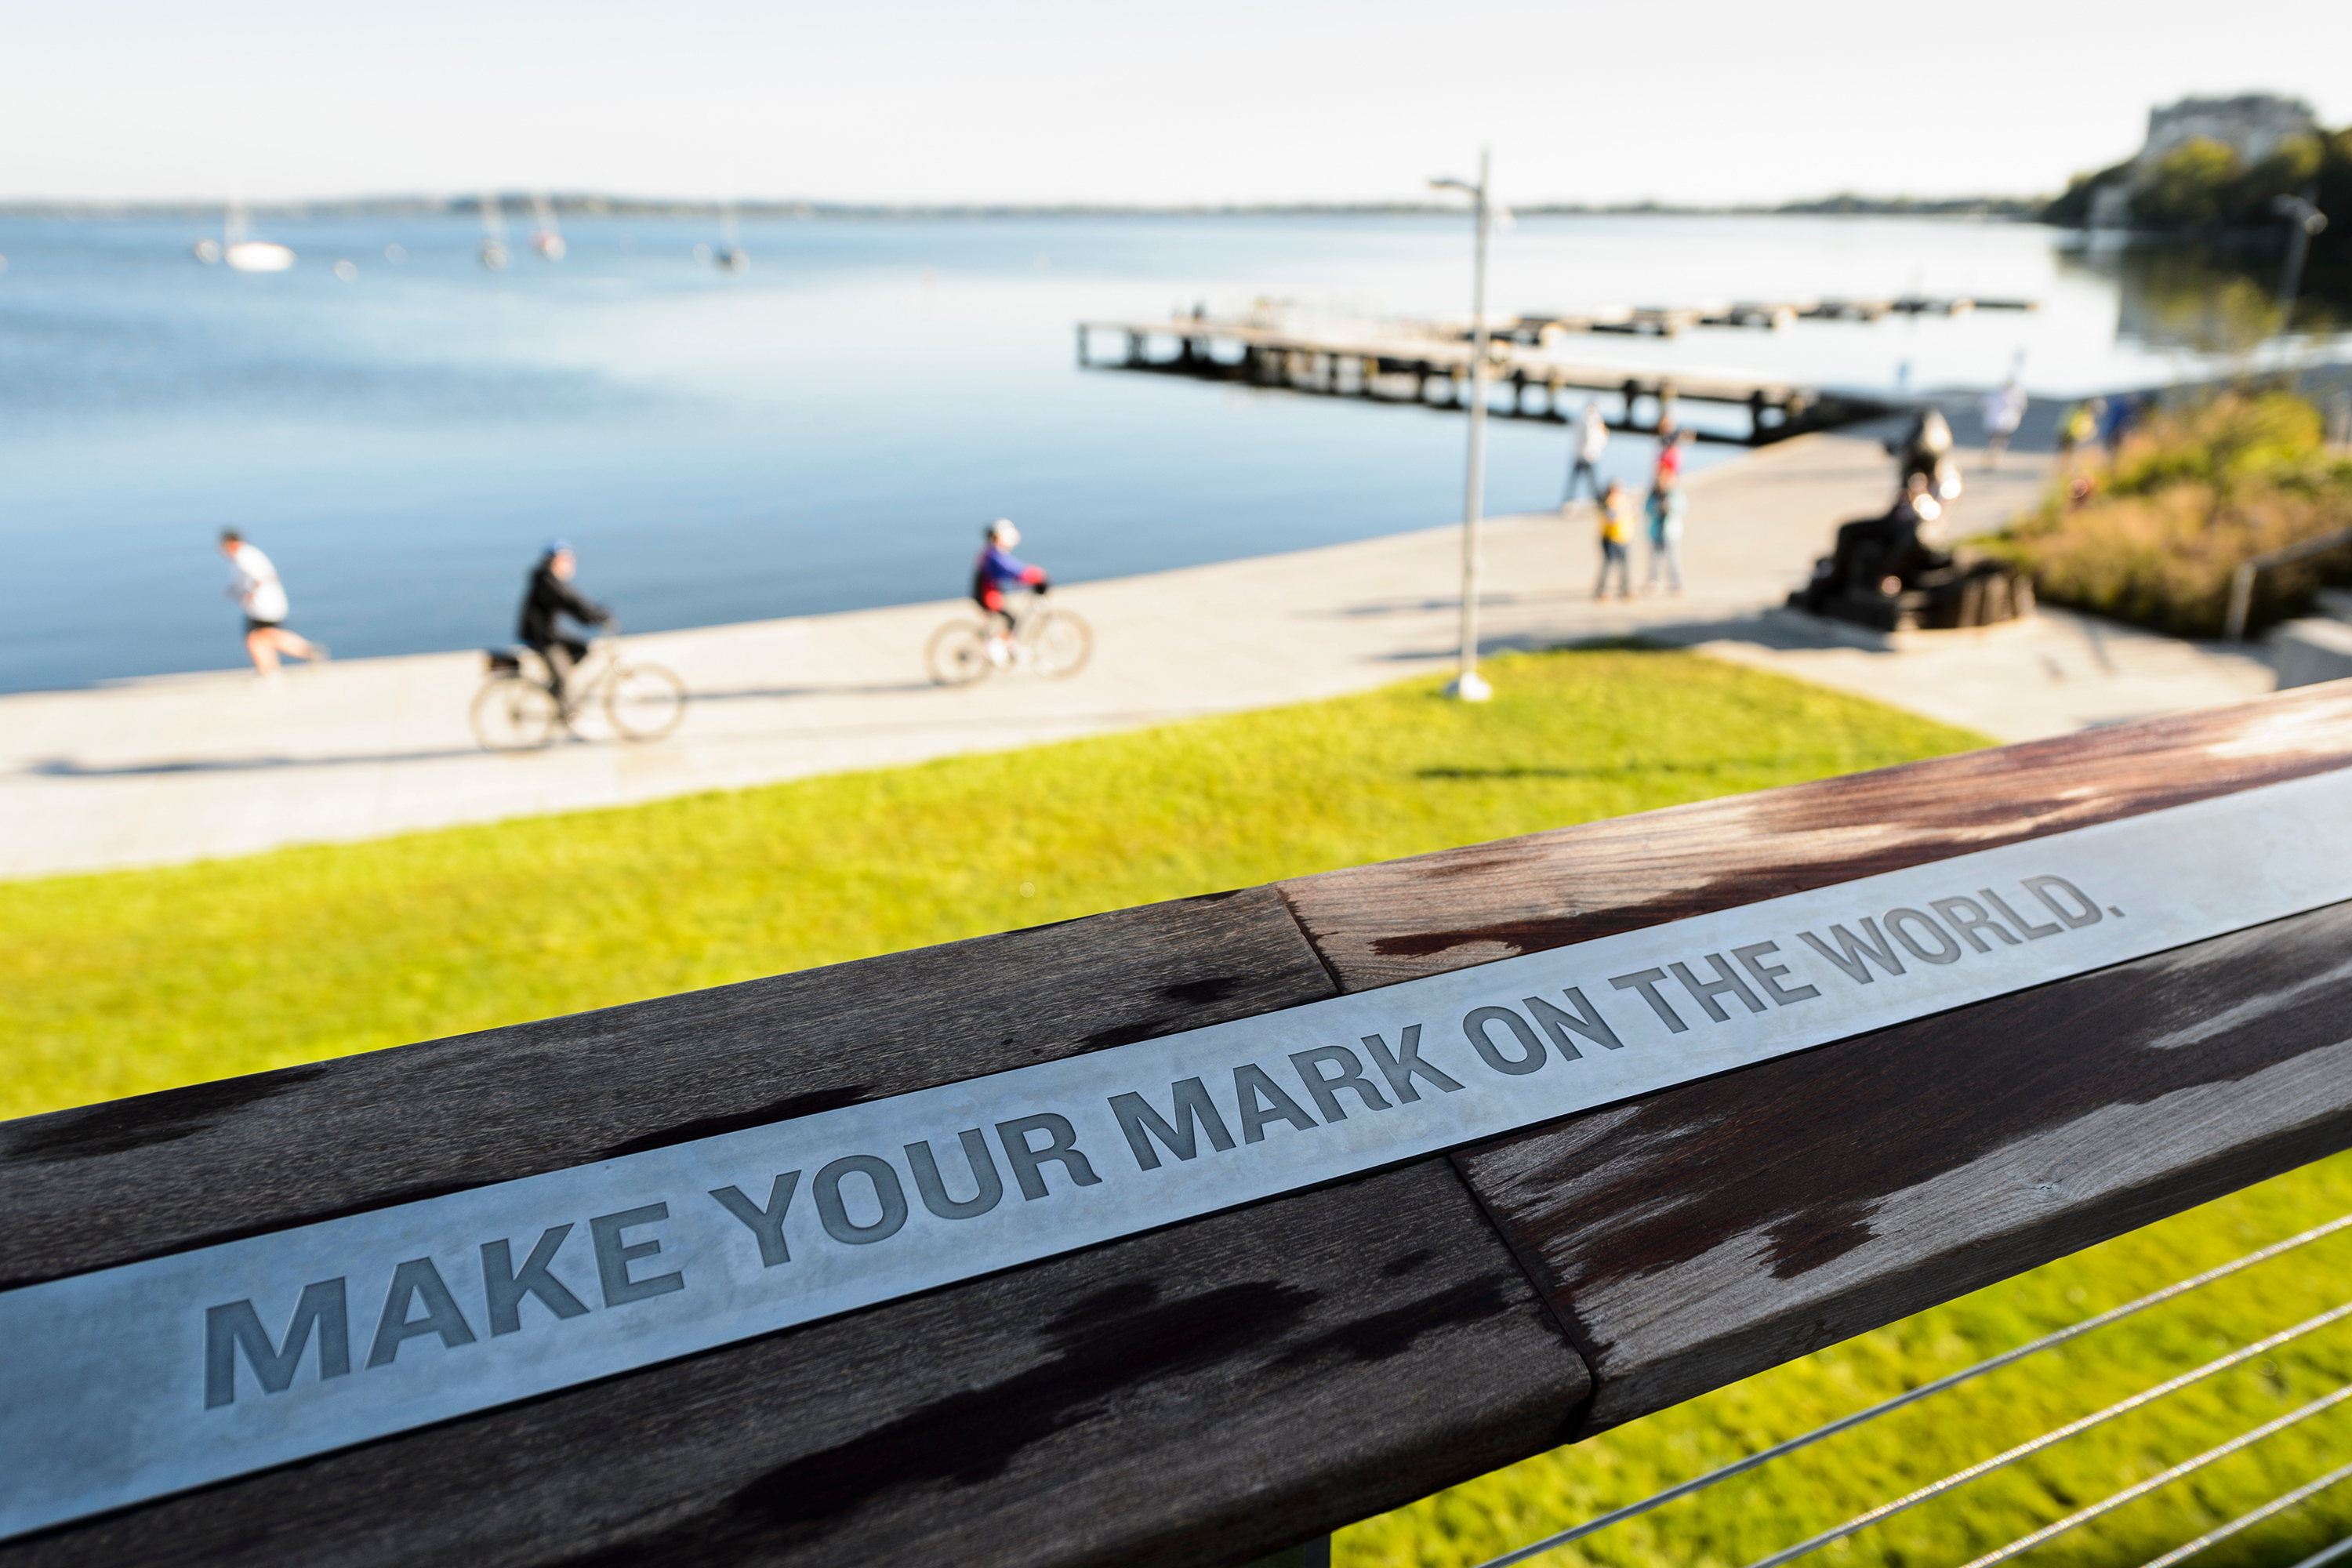 Alumni Park: make your mark on the world